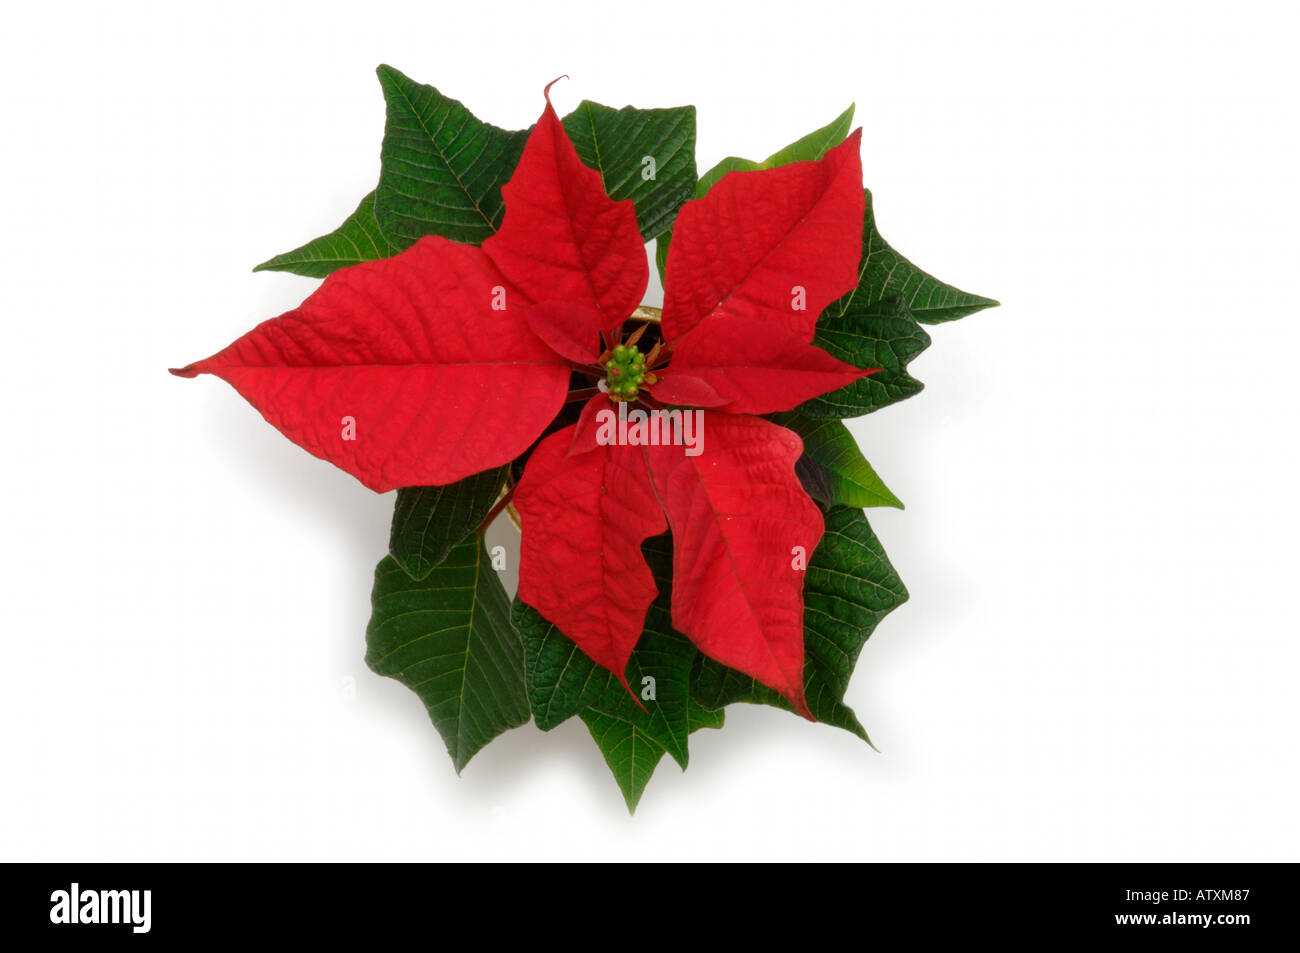 top view of red leaves of poinsettia house plant on white